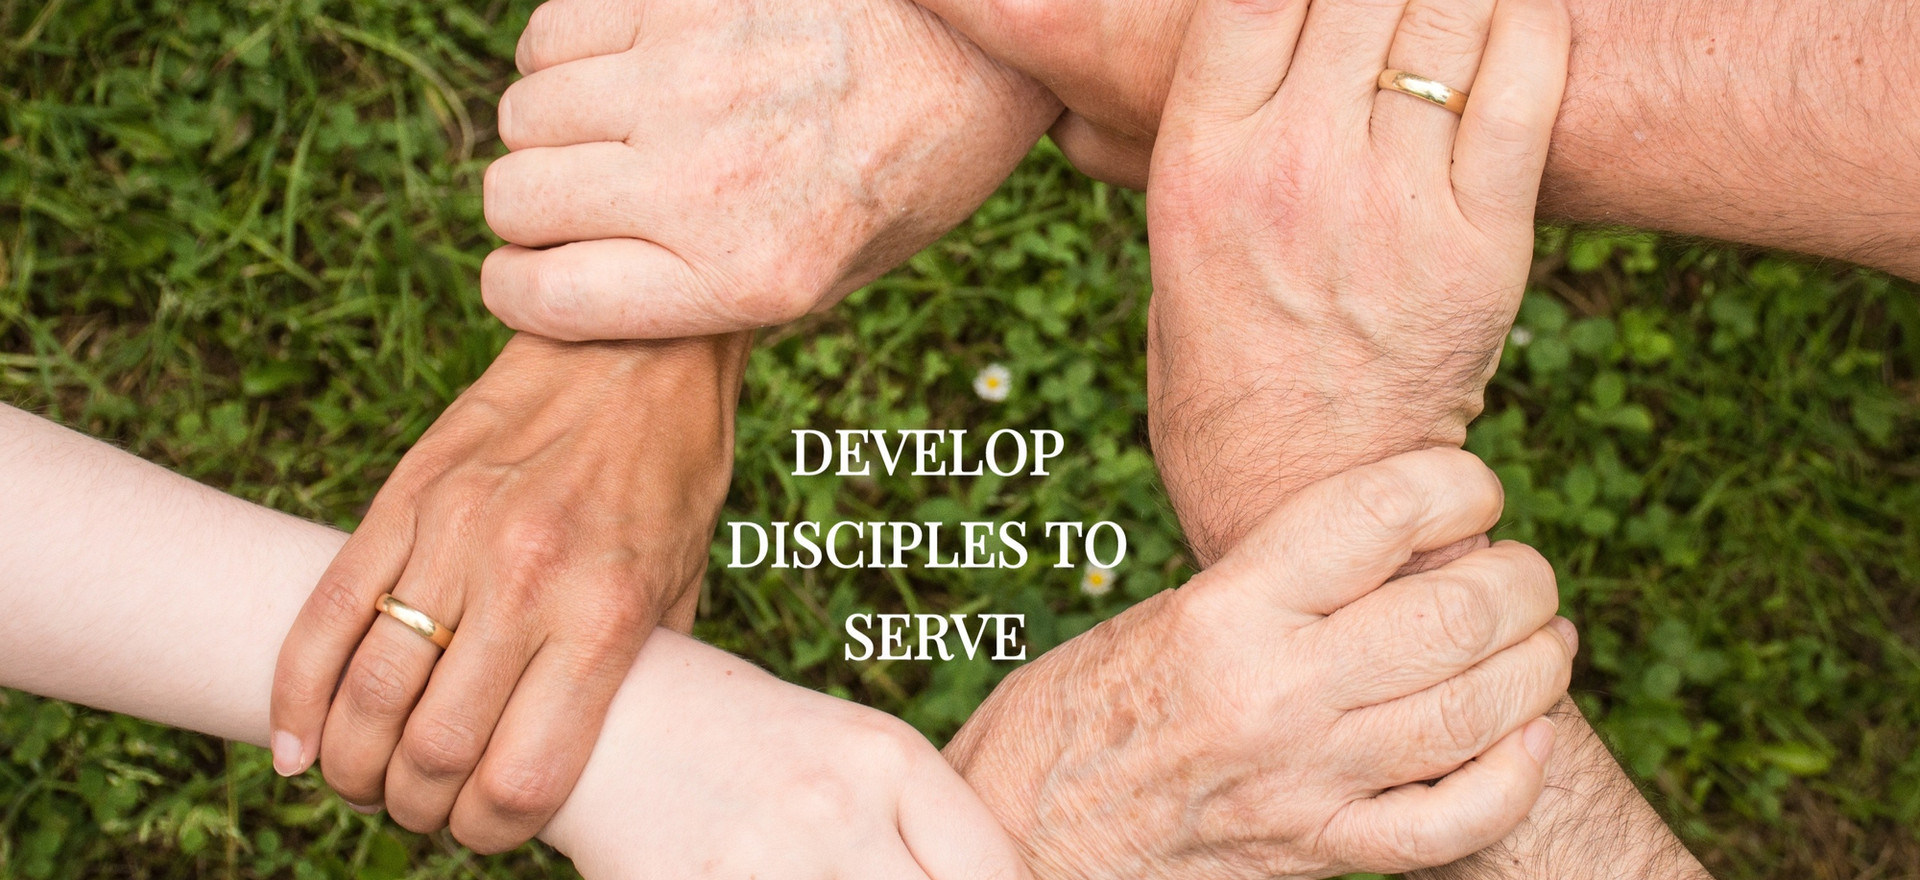 DEVELOP DISCIPLES TO SERVE